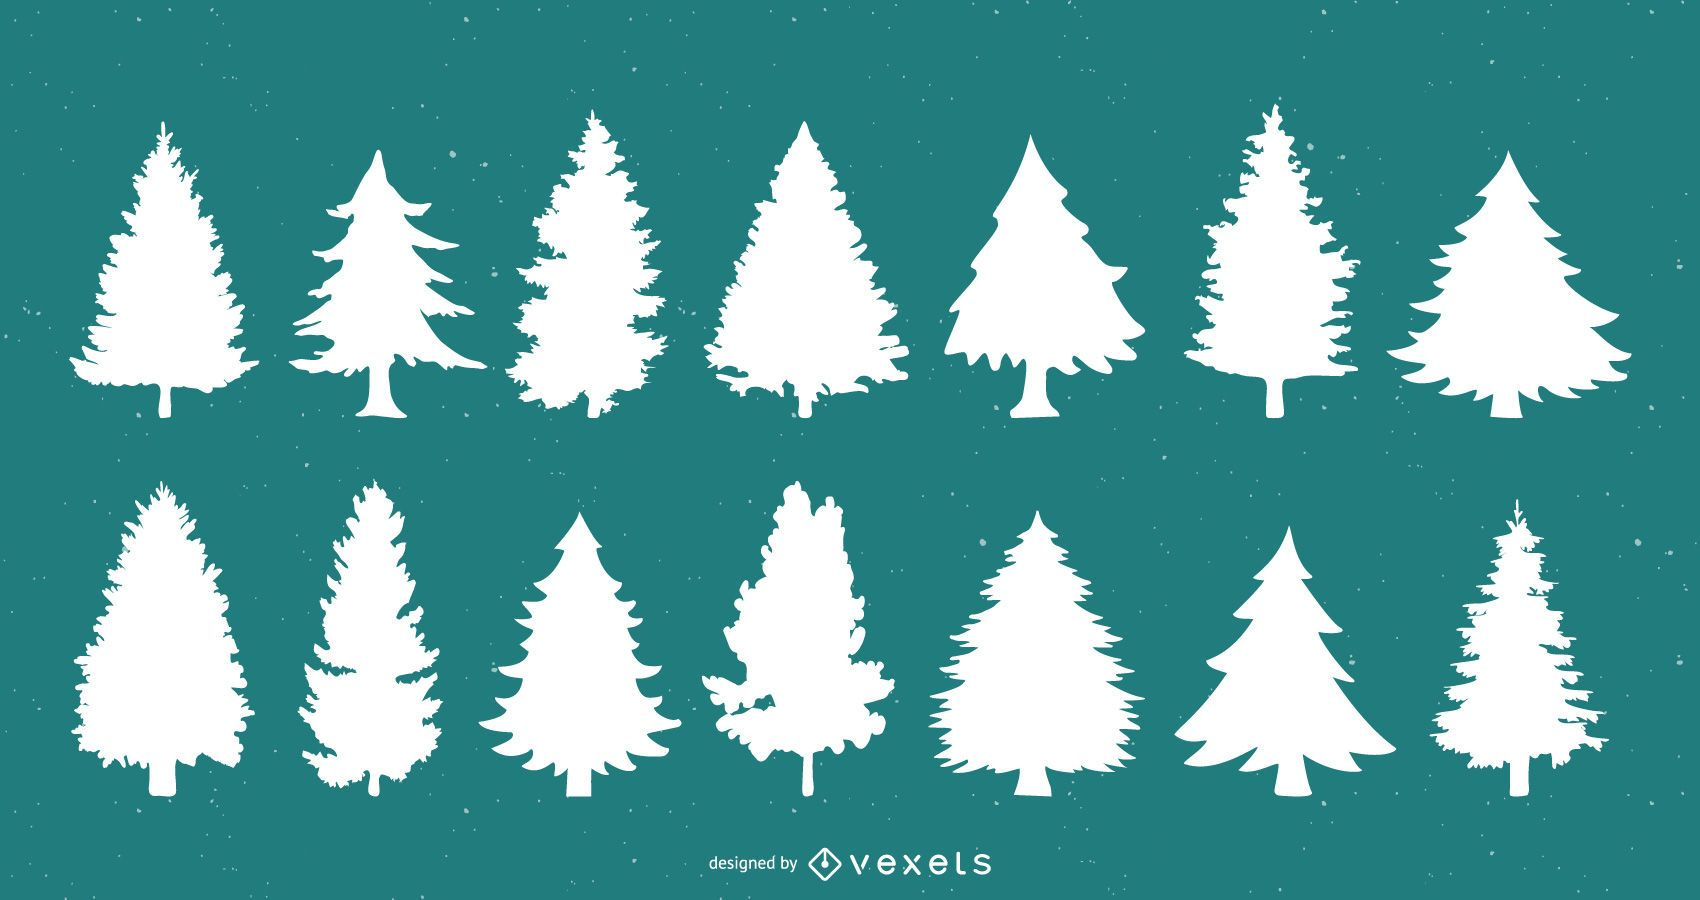 Christmas Trees Silhouette.Christmas Trees Silhouette Set Vector Download